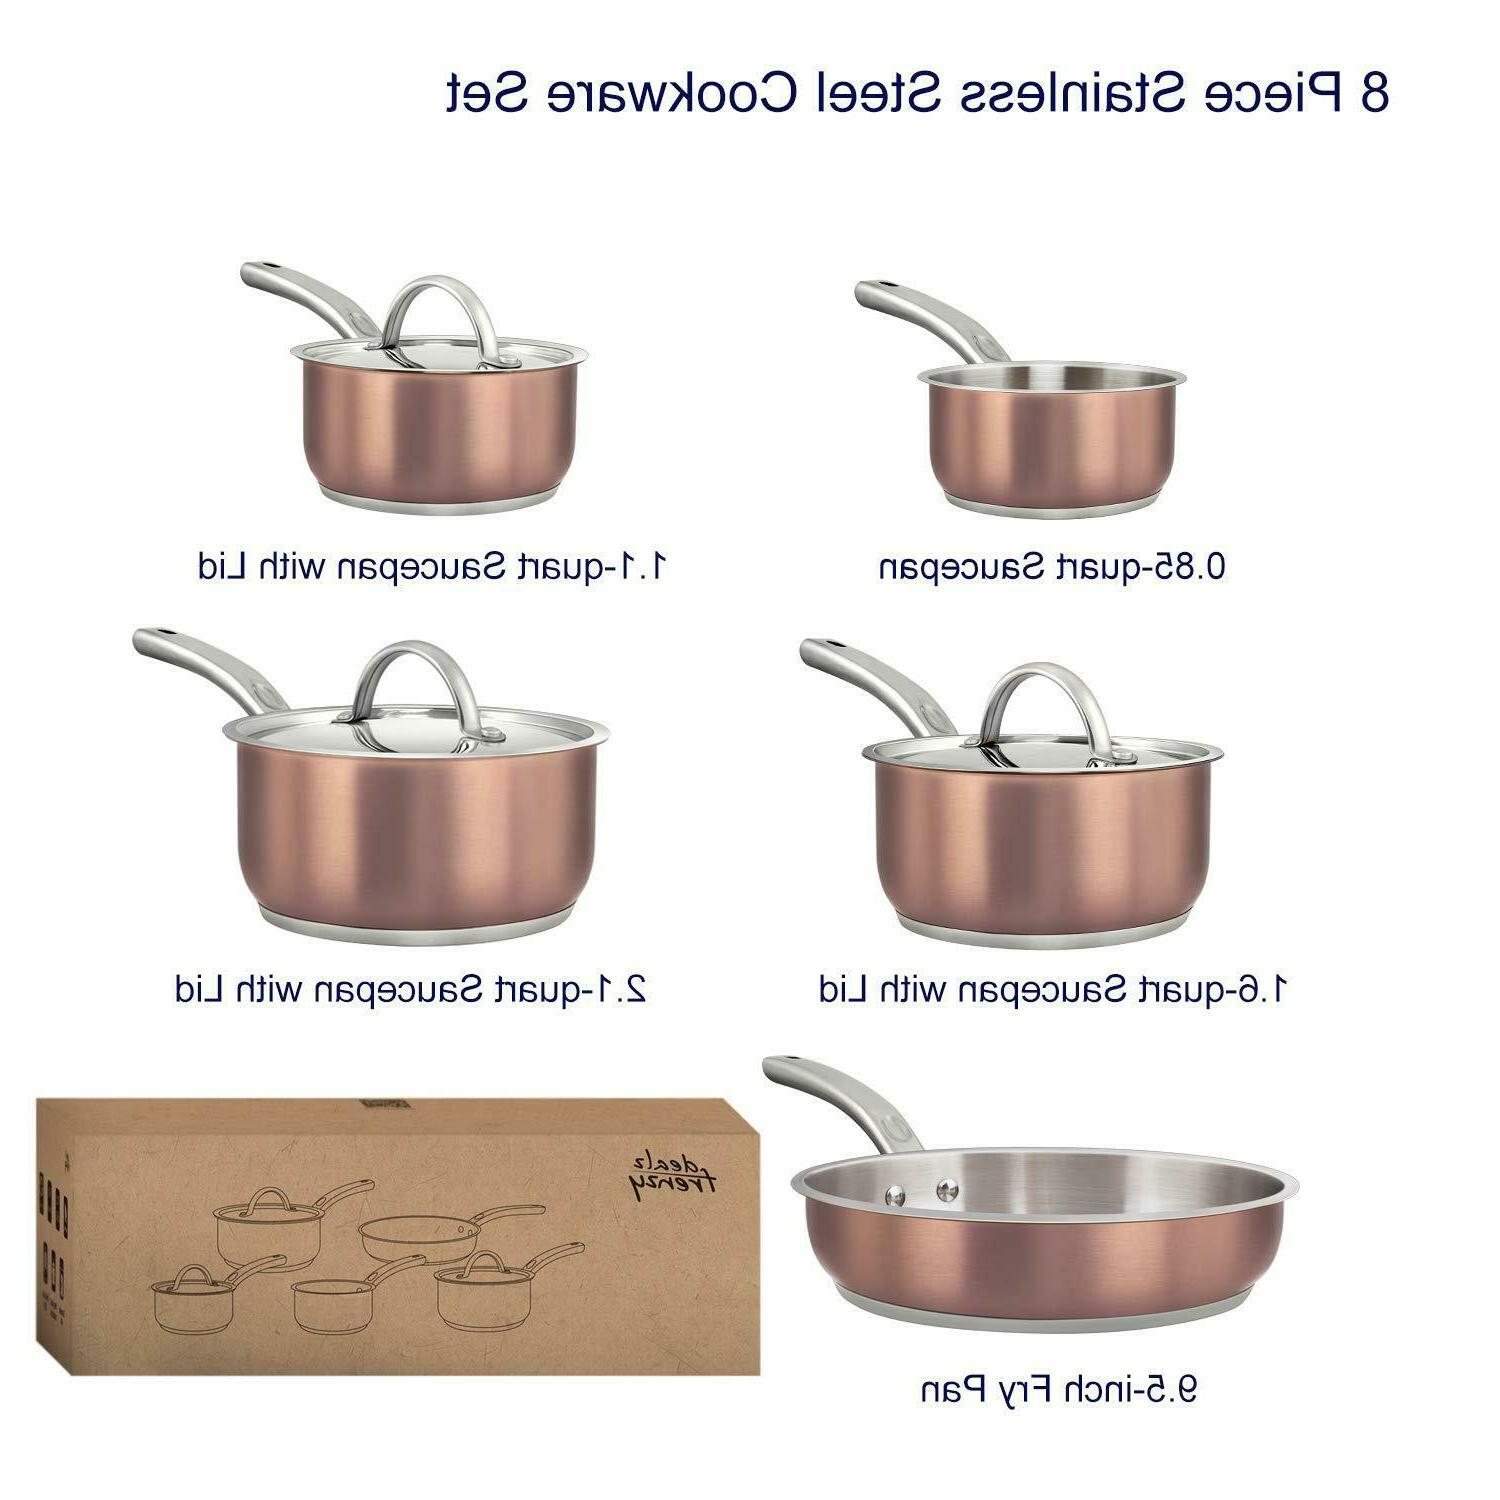 Tri-Ply Copper Cookware Sets - Bottom Rustproof Oven